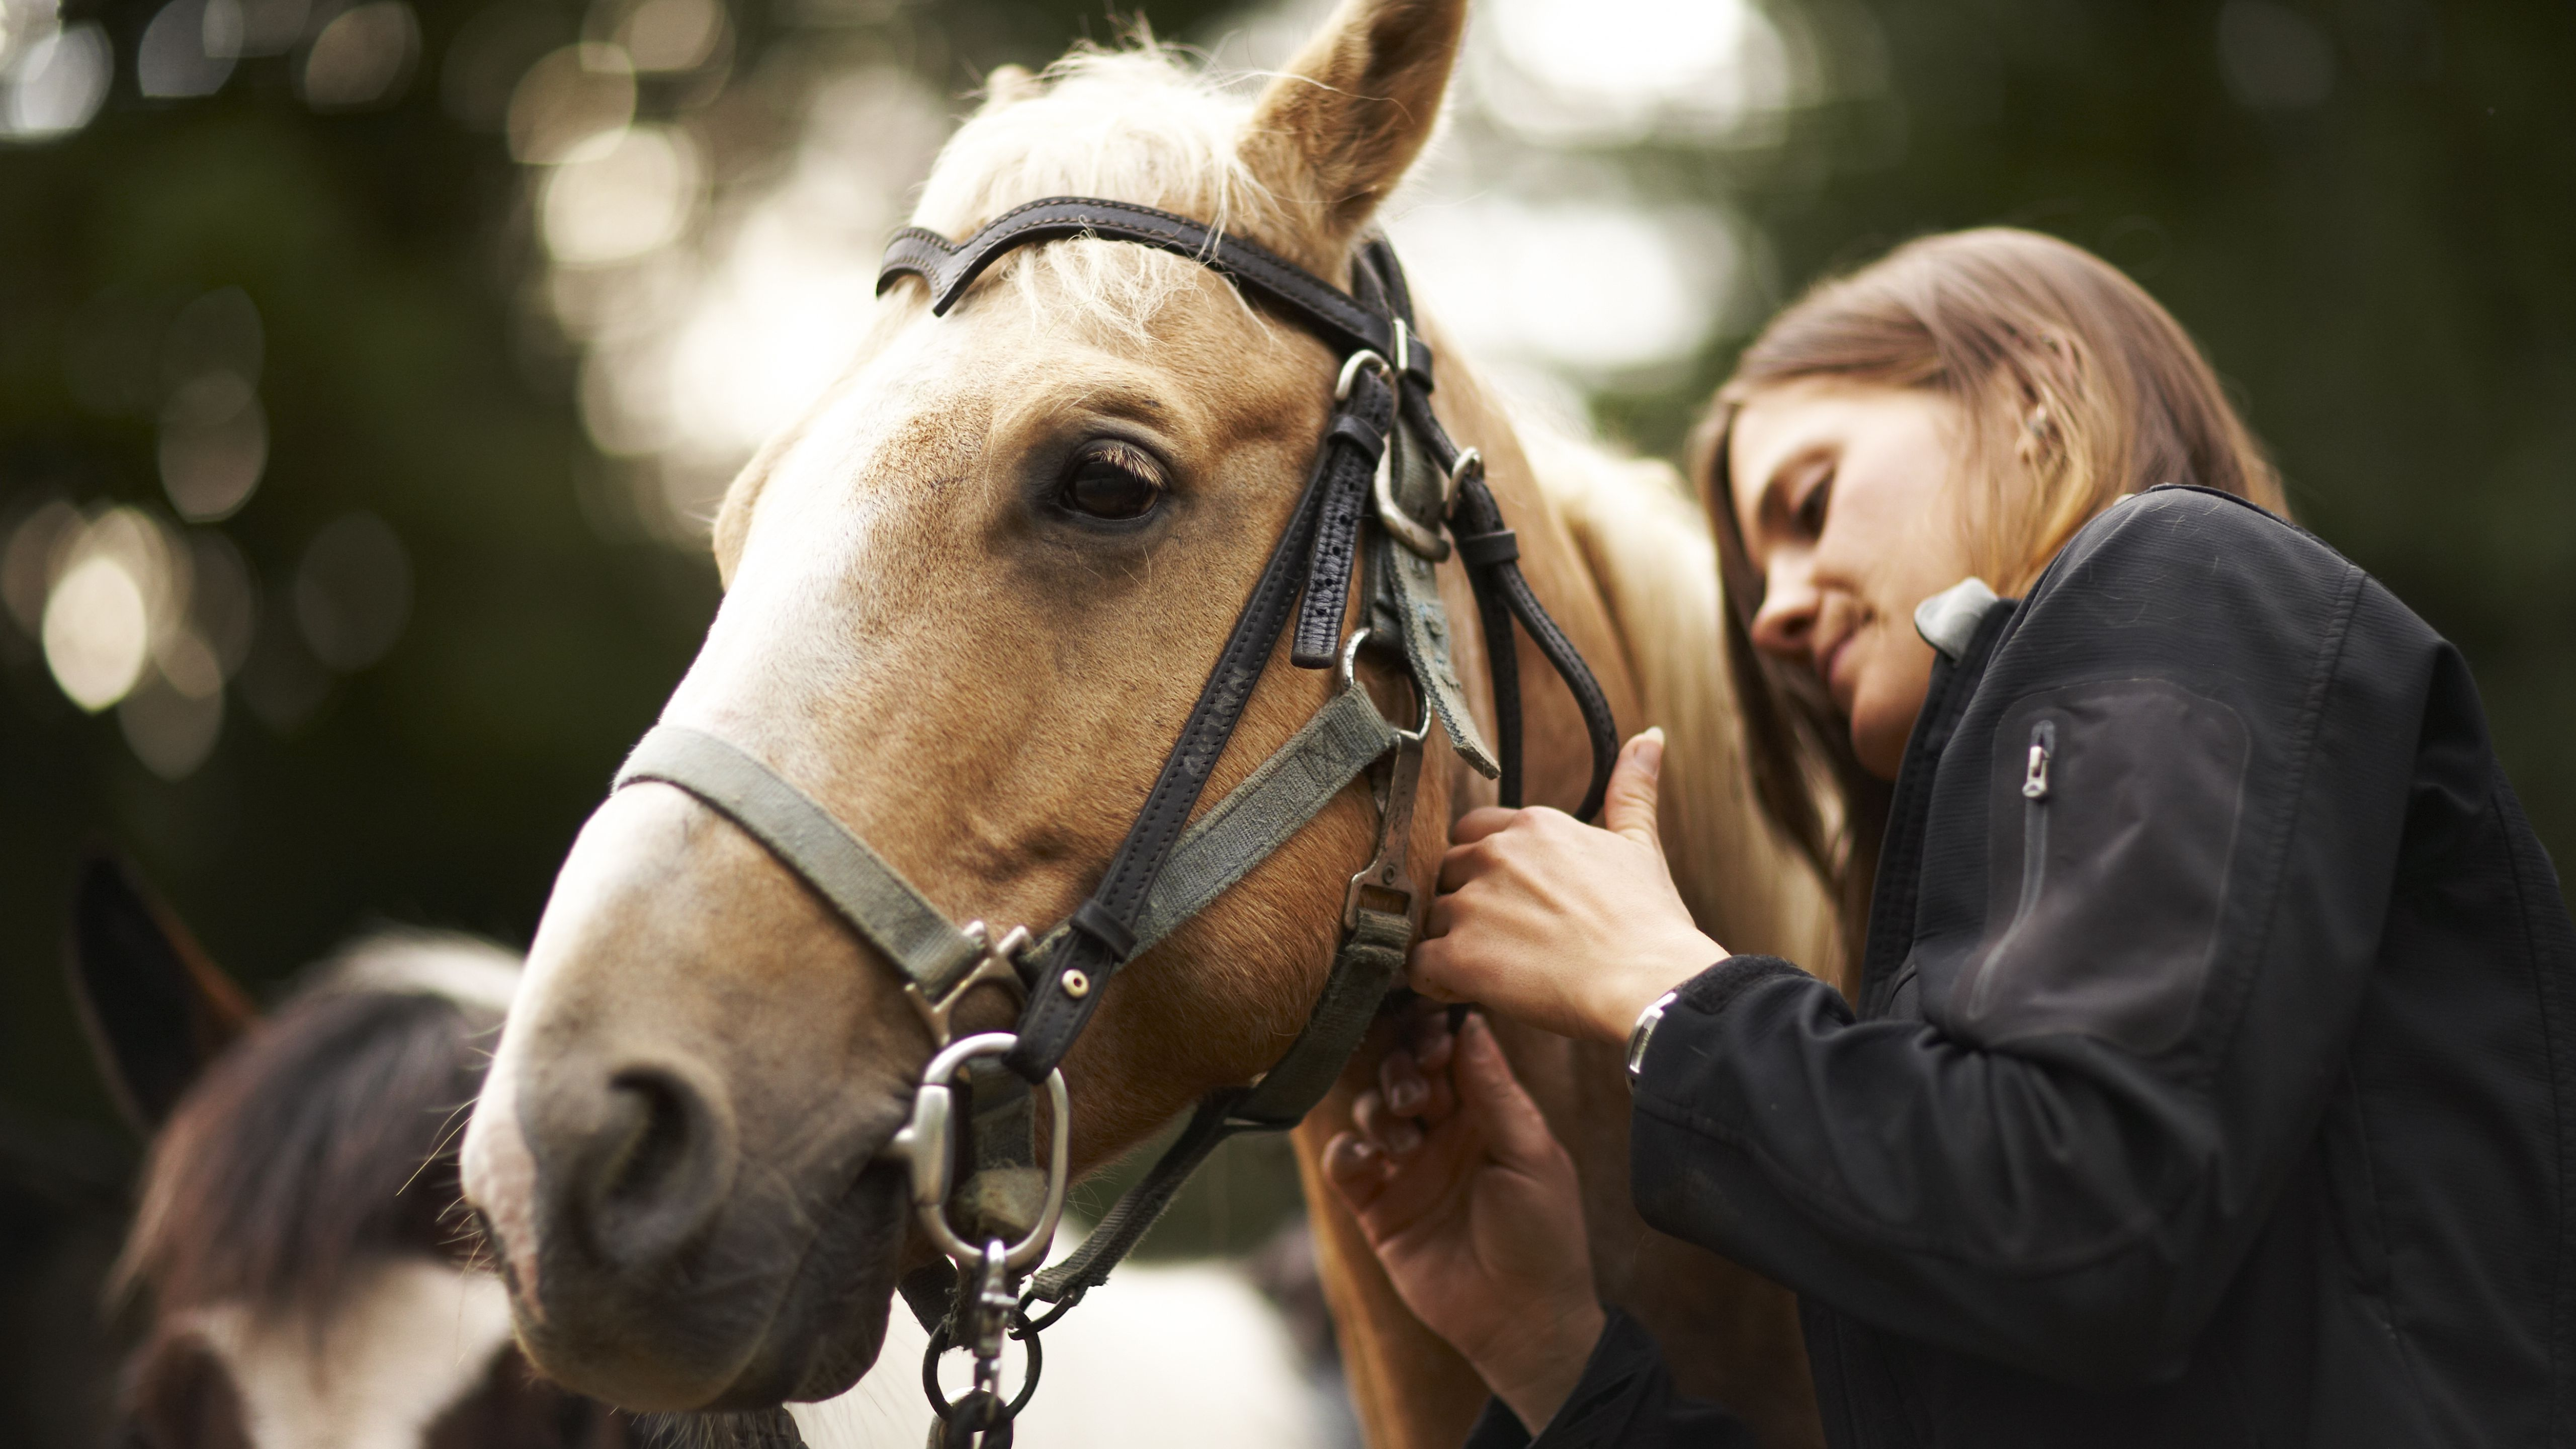 Advice on Choosing a Bit for Your Horse